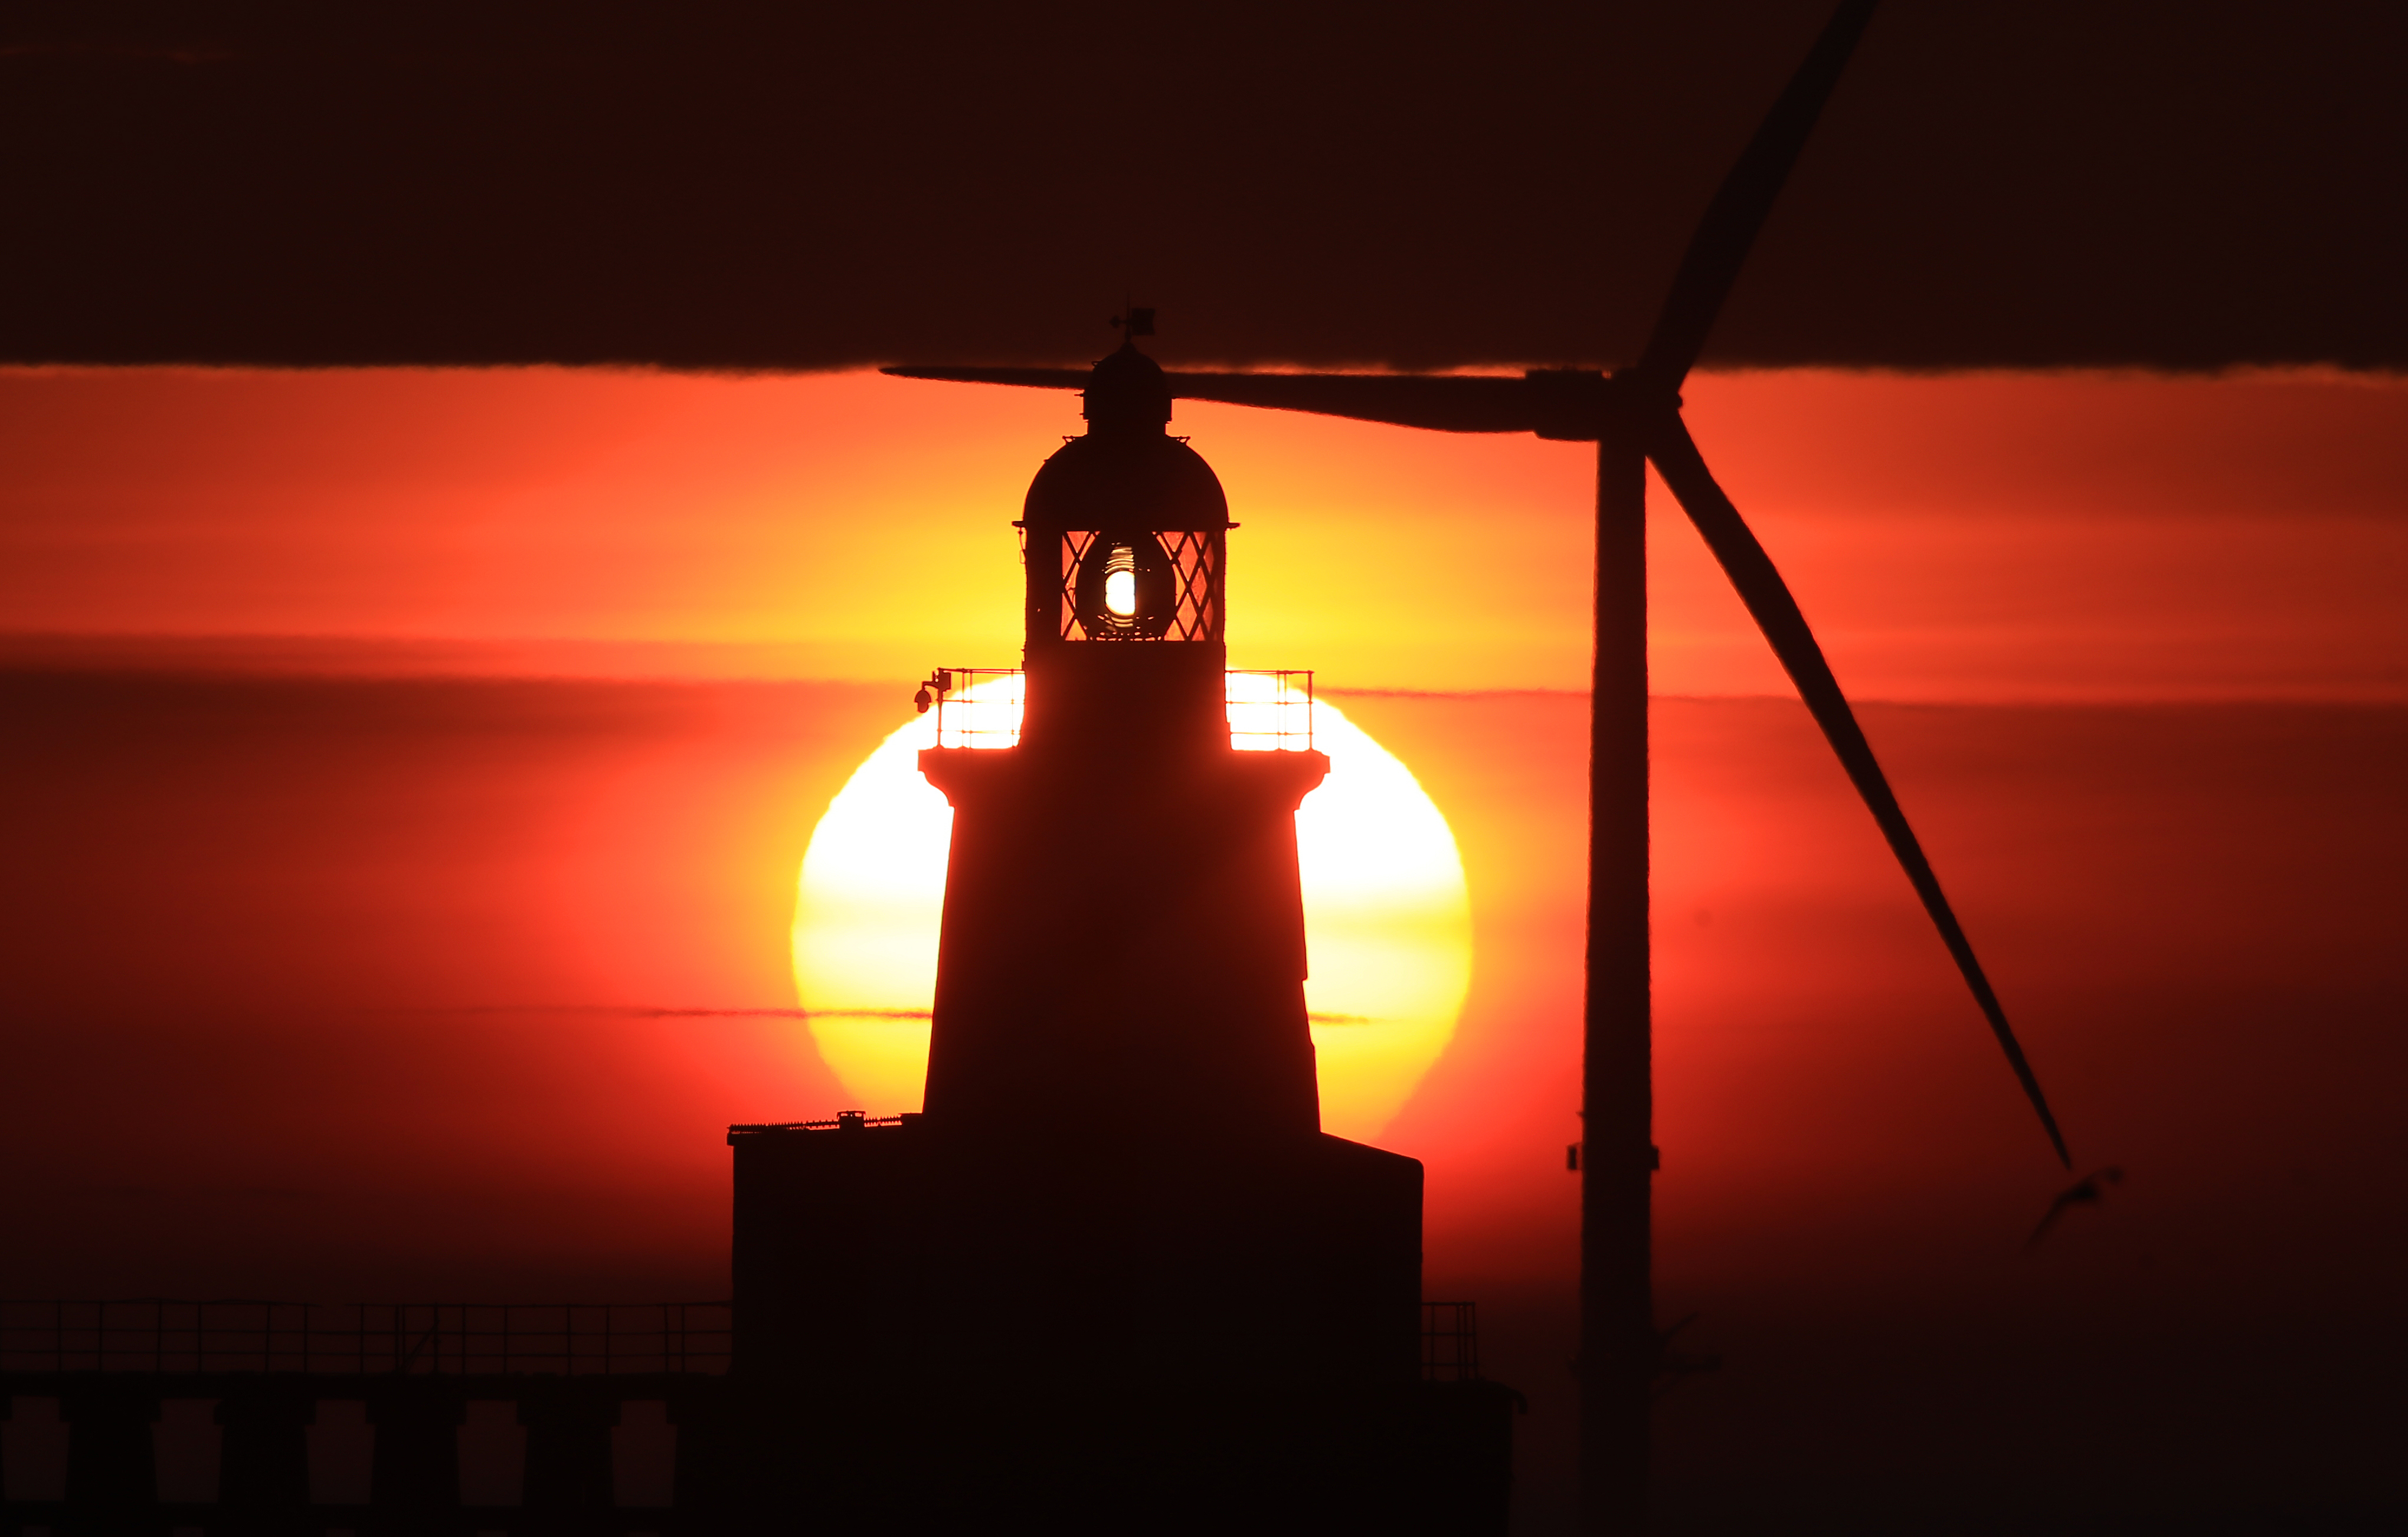 Sunrise at Blyth pier in Northumberland on the north east coast as the Met Office has predicted the hottest day of the year so far with temperatures set to hit 28C in some parts of the country. (Photo by Owen Humphreys/PA Images via Getty Images)